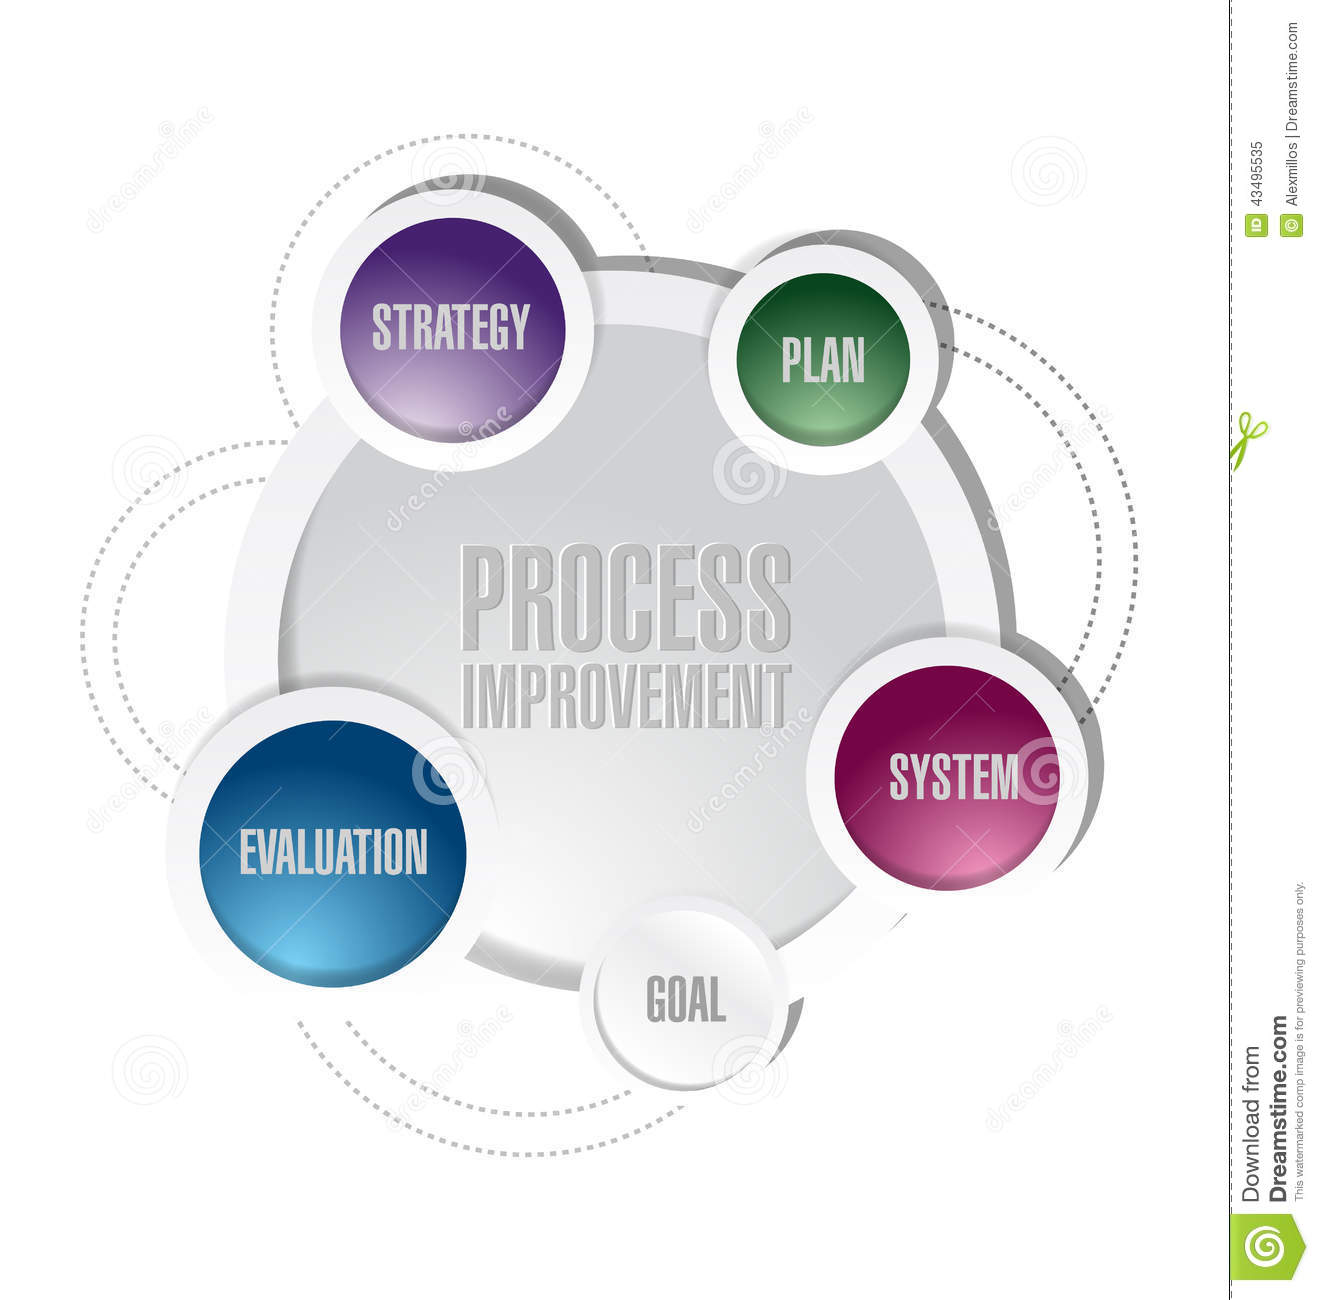 process improvement diagram illustration design stock illustration    process improvement diagram illustration design